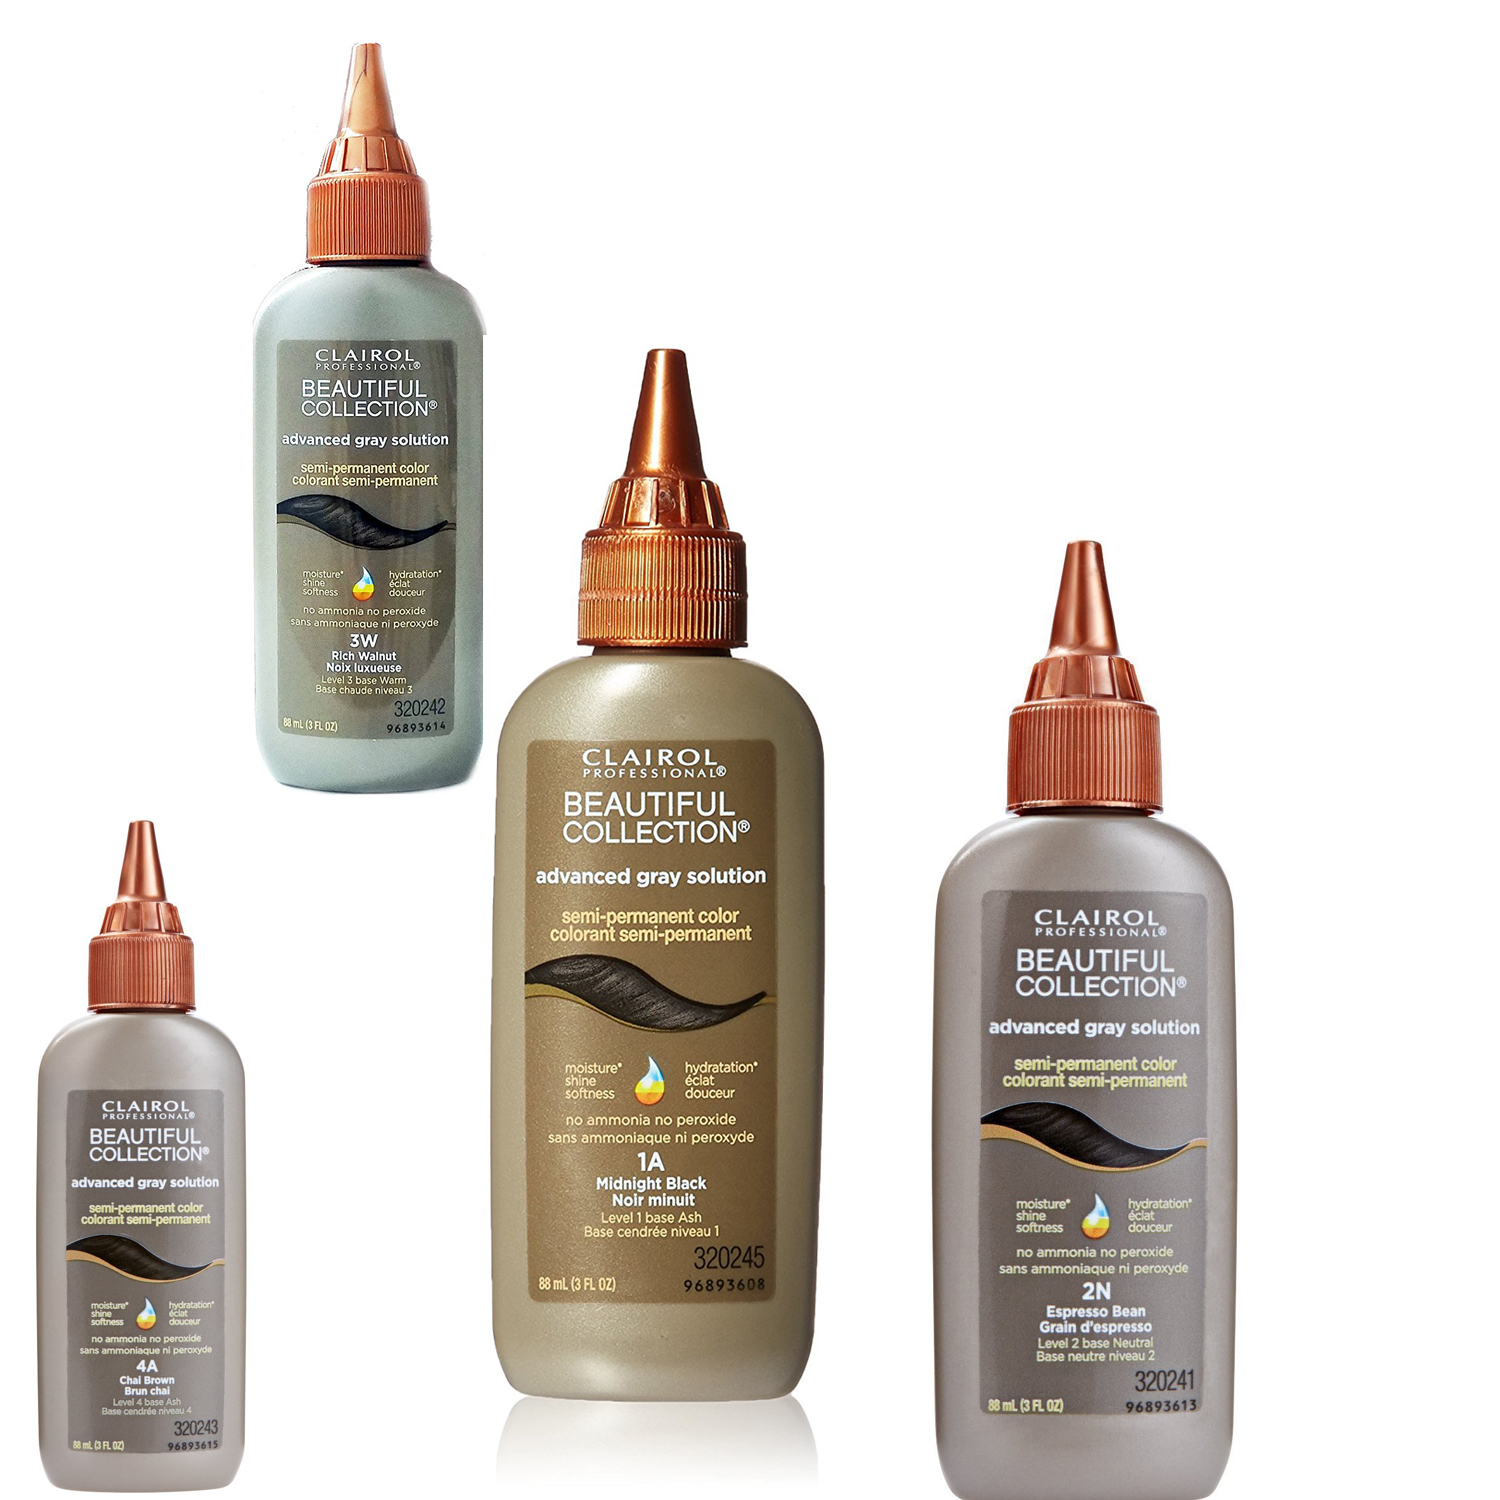 Clairol Professional Beautiful Collection Advanced Gray Solution